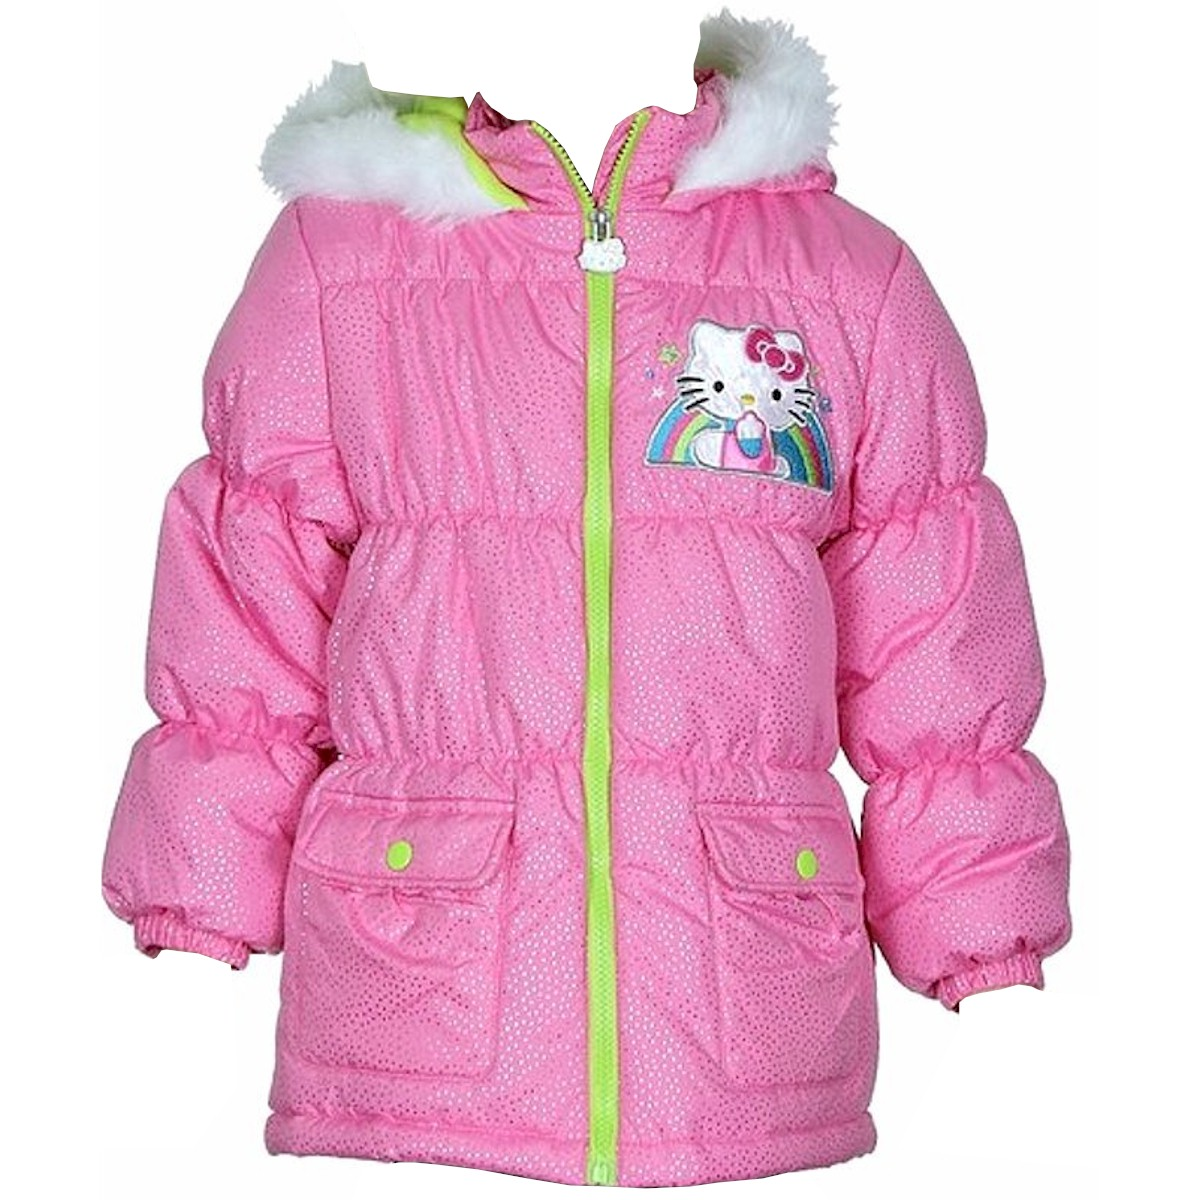 Image of Hello Kitty Infant/Toddler Girl's HK036 Puffer Hooded Winter Jacket - Pink - 2T